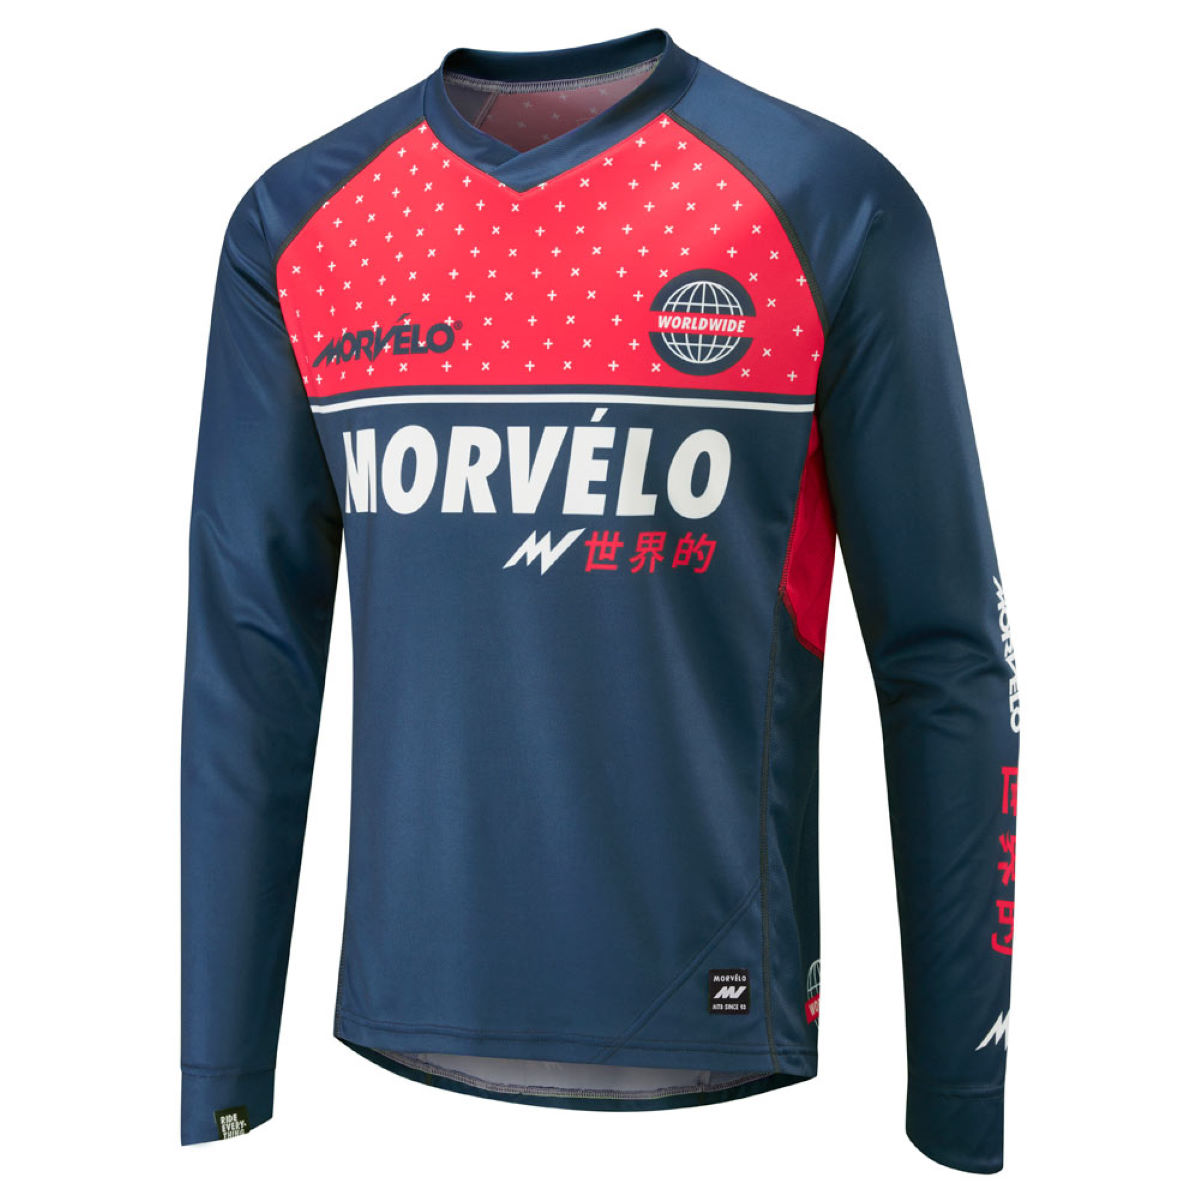 Maillot VTT Morvelo Worldwide (manches longues) - 2XL Worldwide